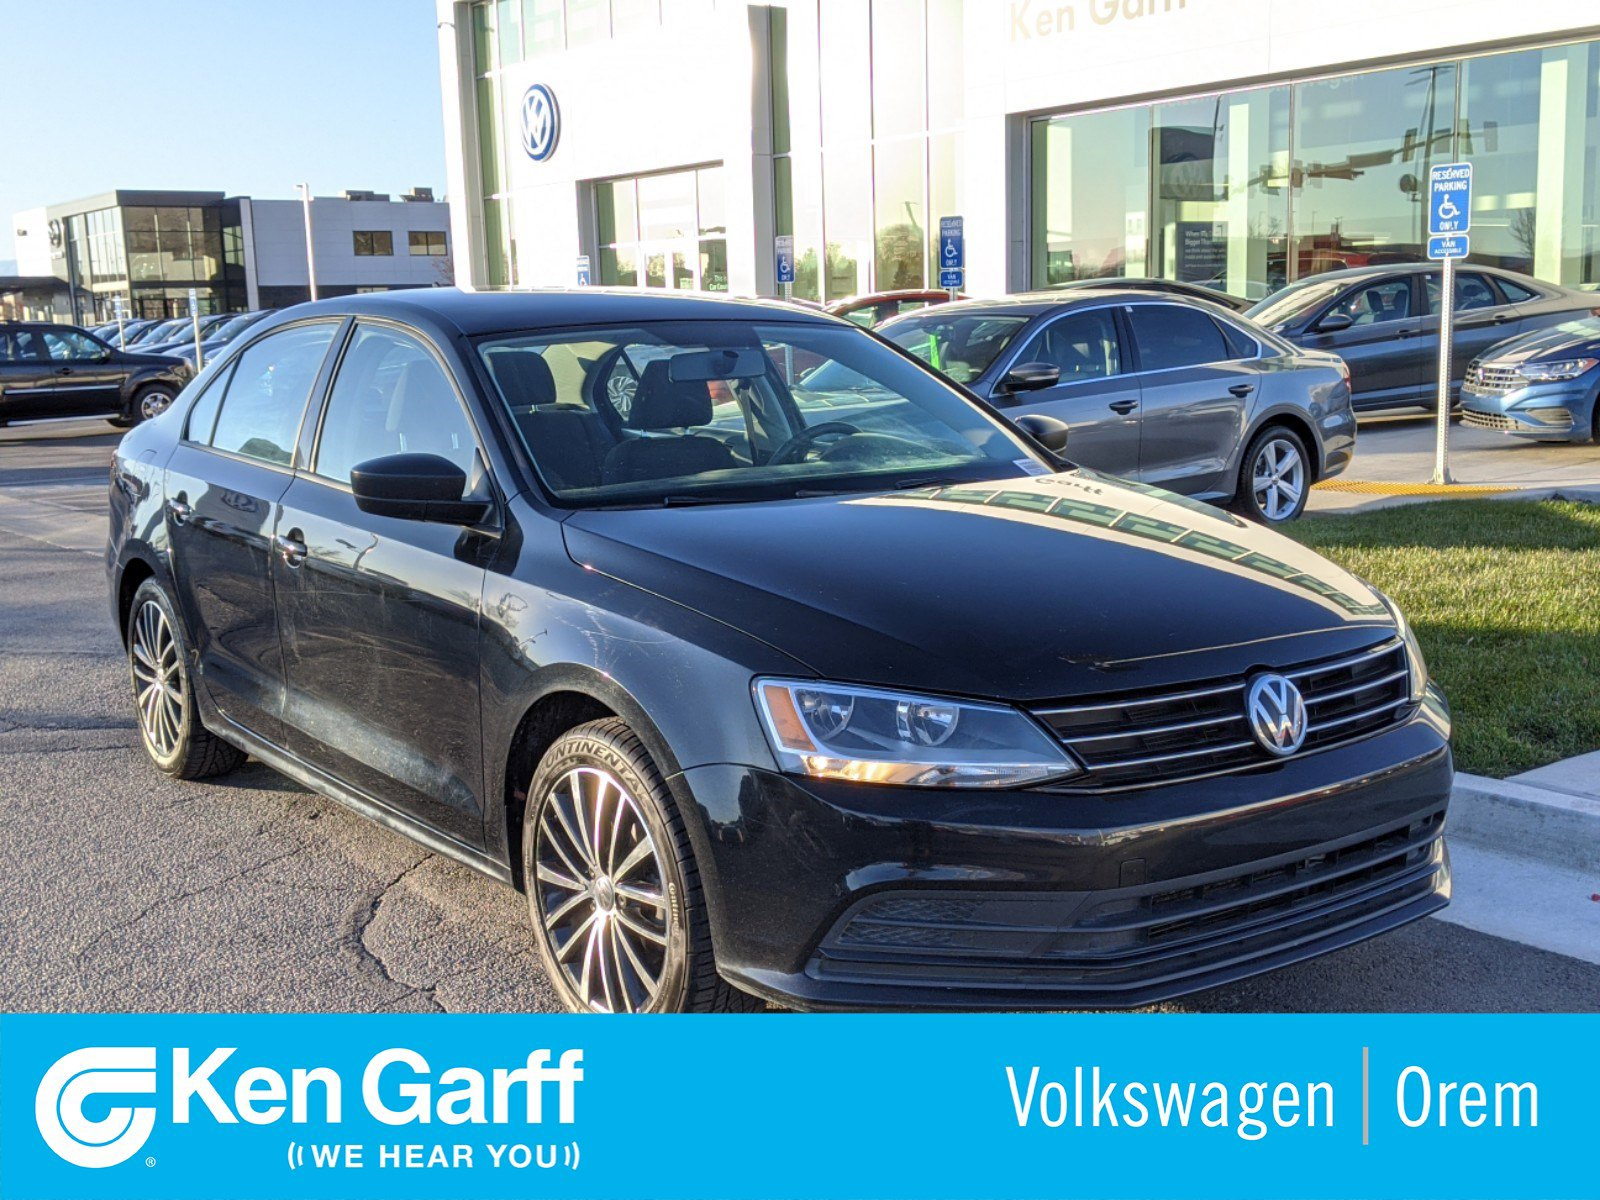 Pre-Owned 2016 Volkswagen Jetta Sedan 4DR SDN 1.4T SE AT